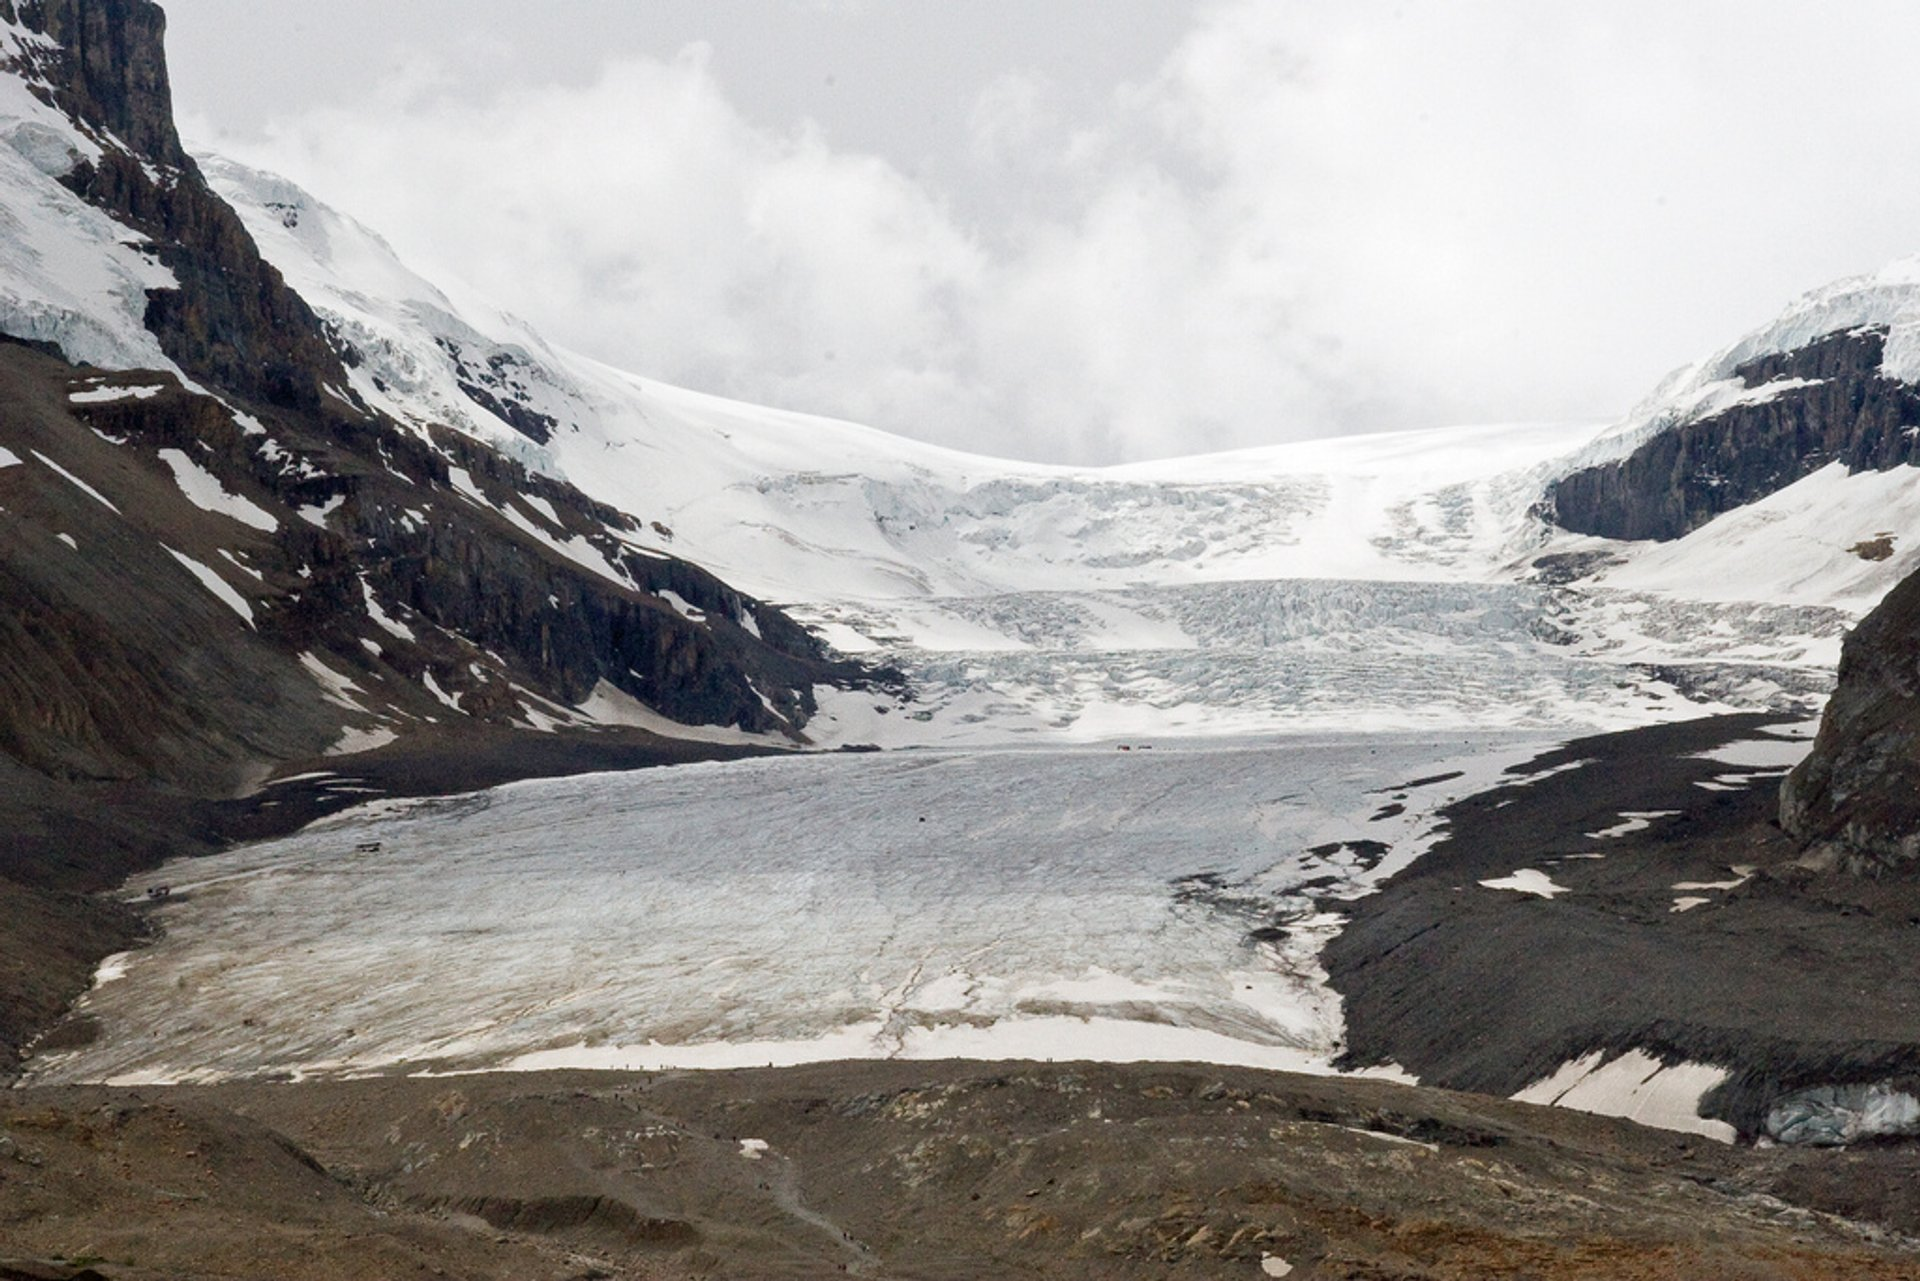 Columbia Icefield, Athabasca Glacier in Banff & Jasper National Parks 2020 - Best Time